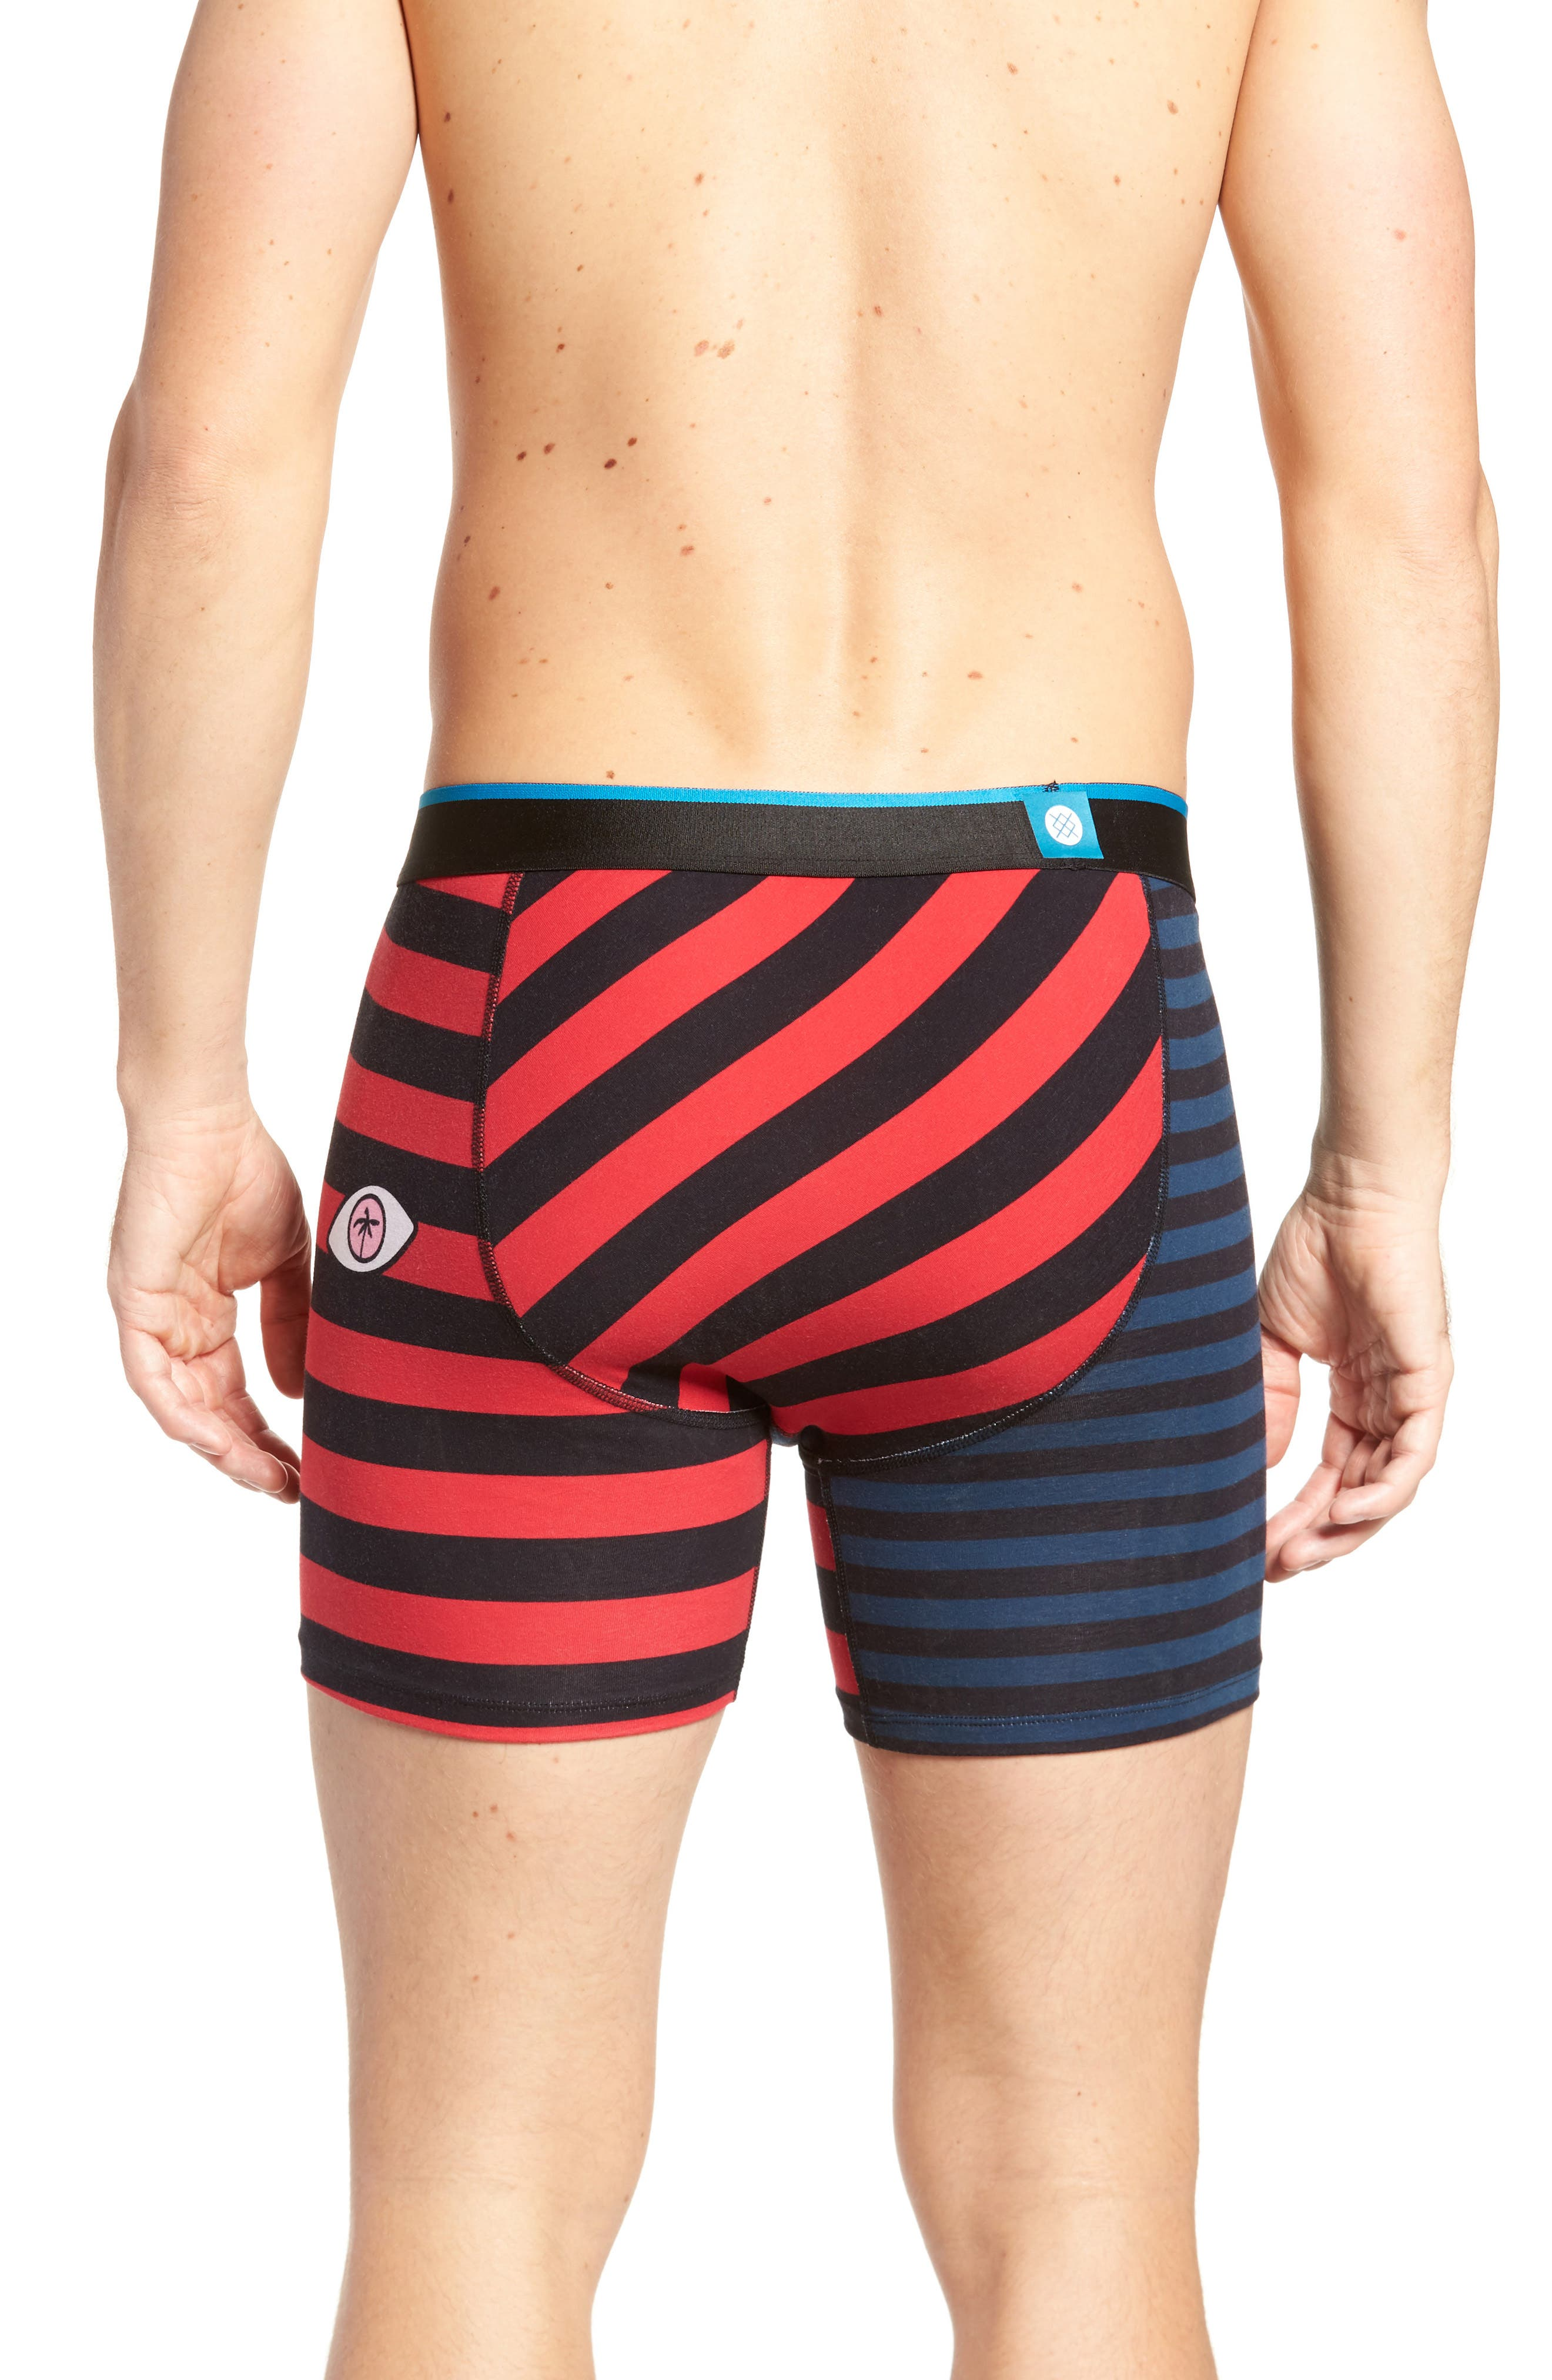 Travel Vibes Boxer Briefs,                             Alternate thumbnail 2, color,                             420